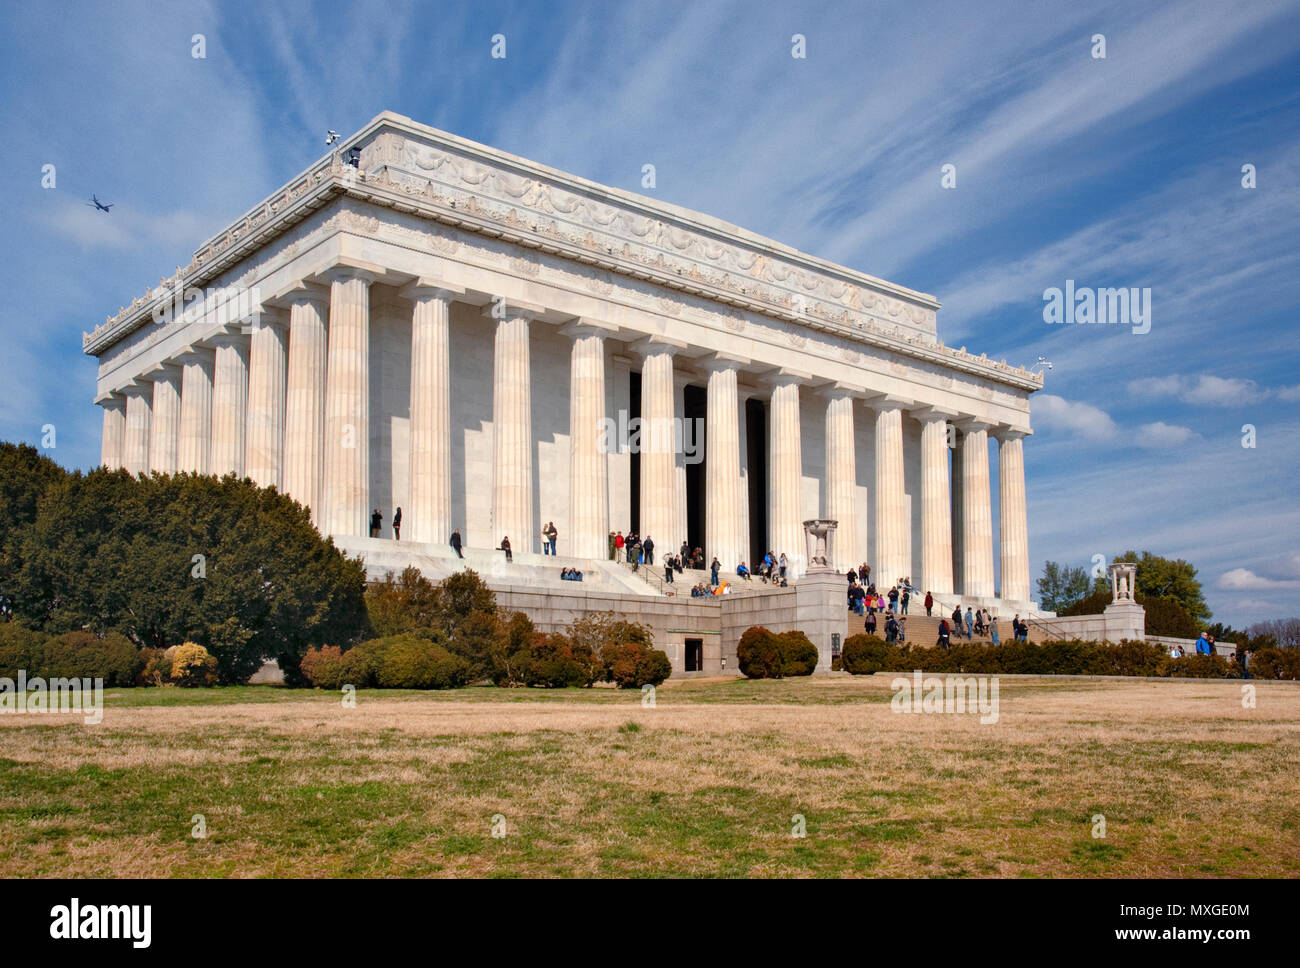 Lincoln Memorial in Washington DC - Stock Image